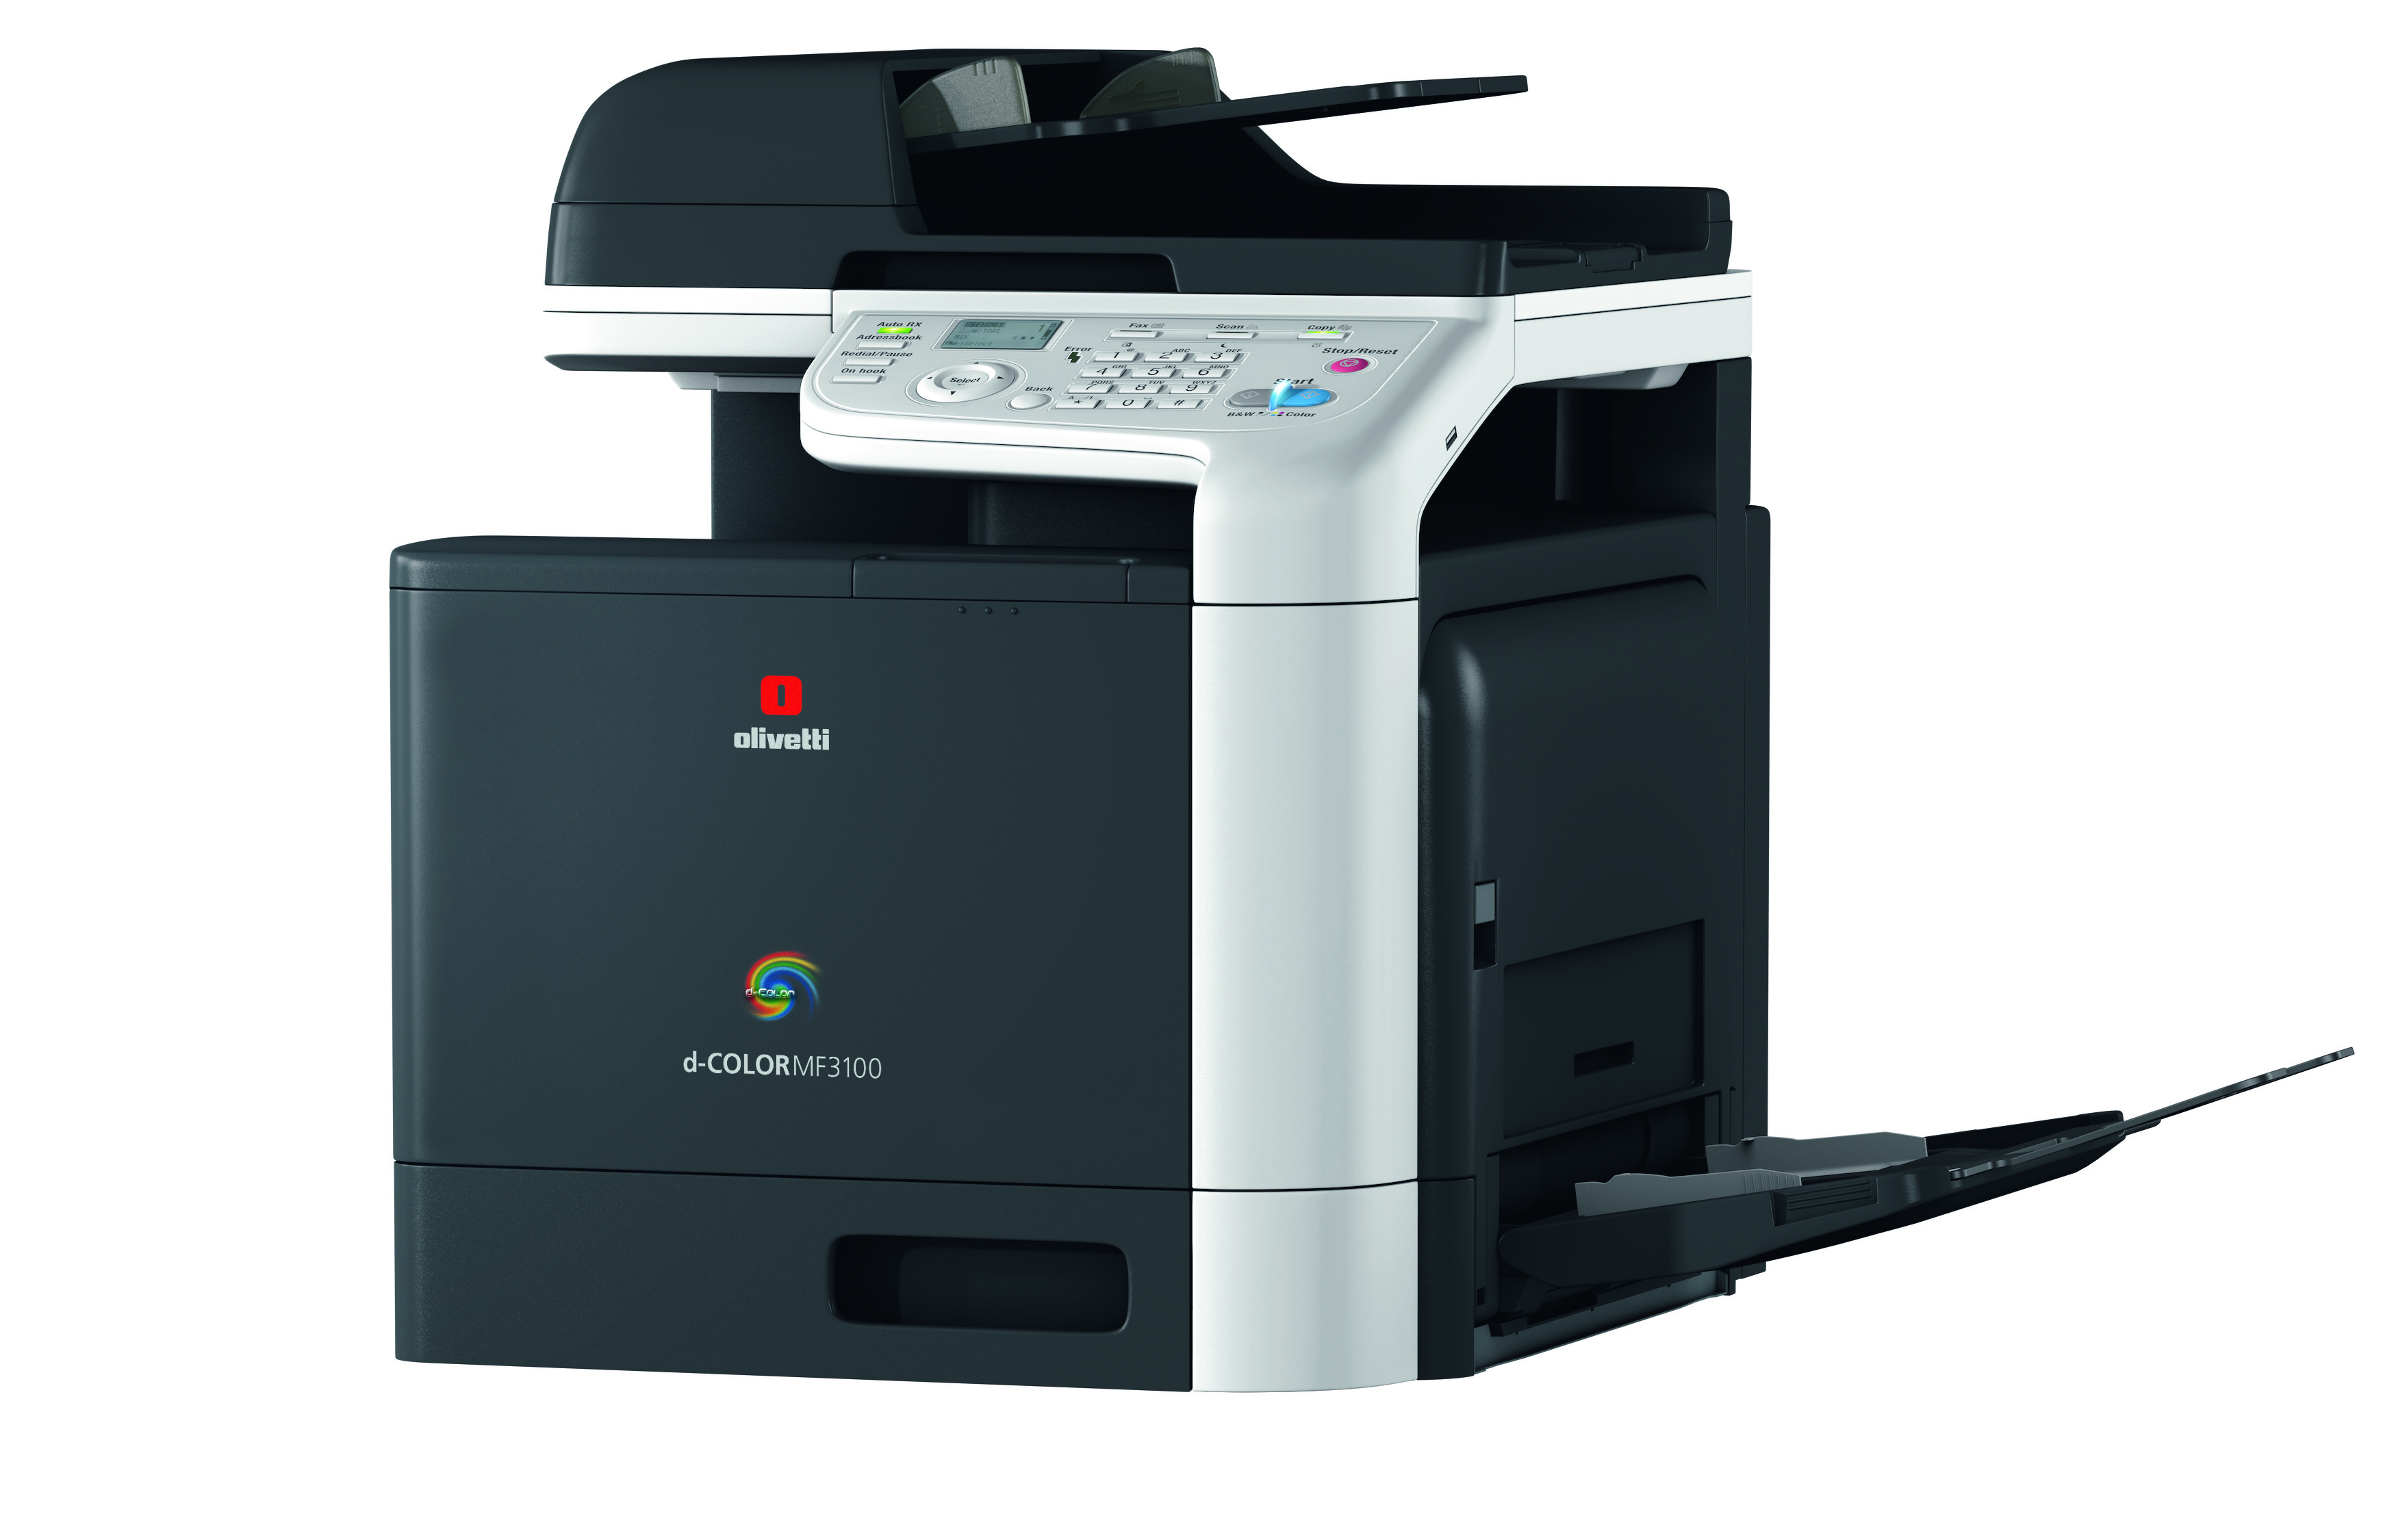 Olivetti – d-Color MF3100